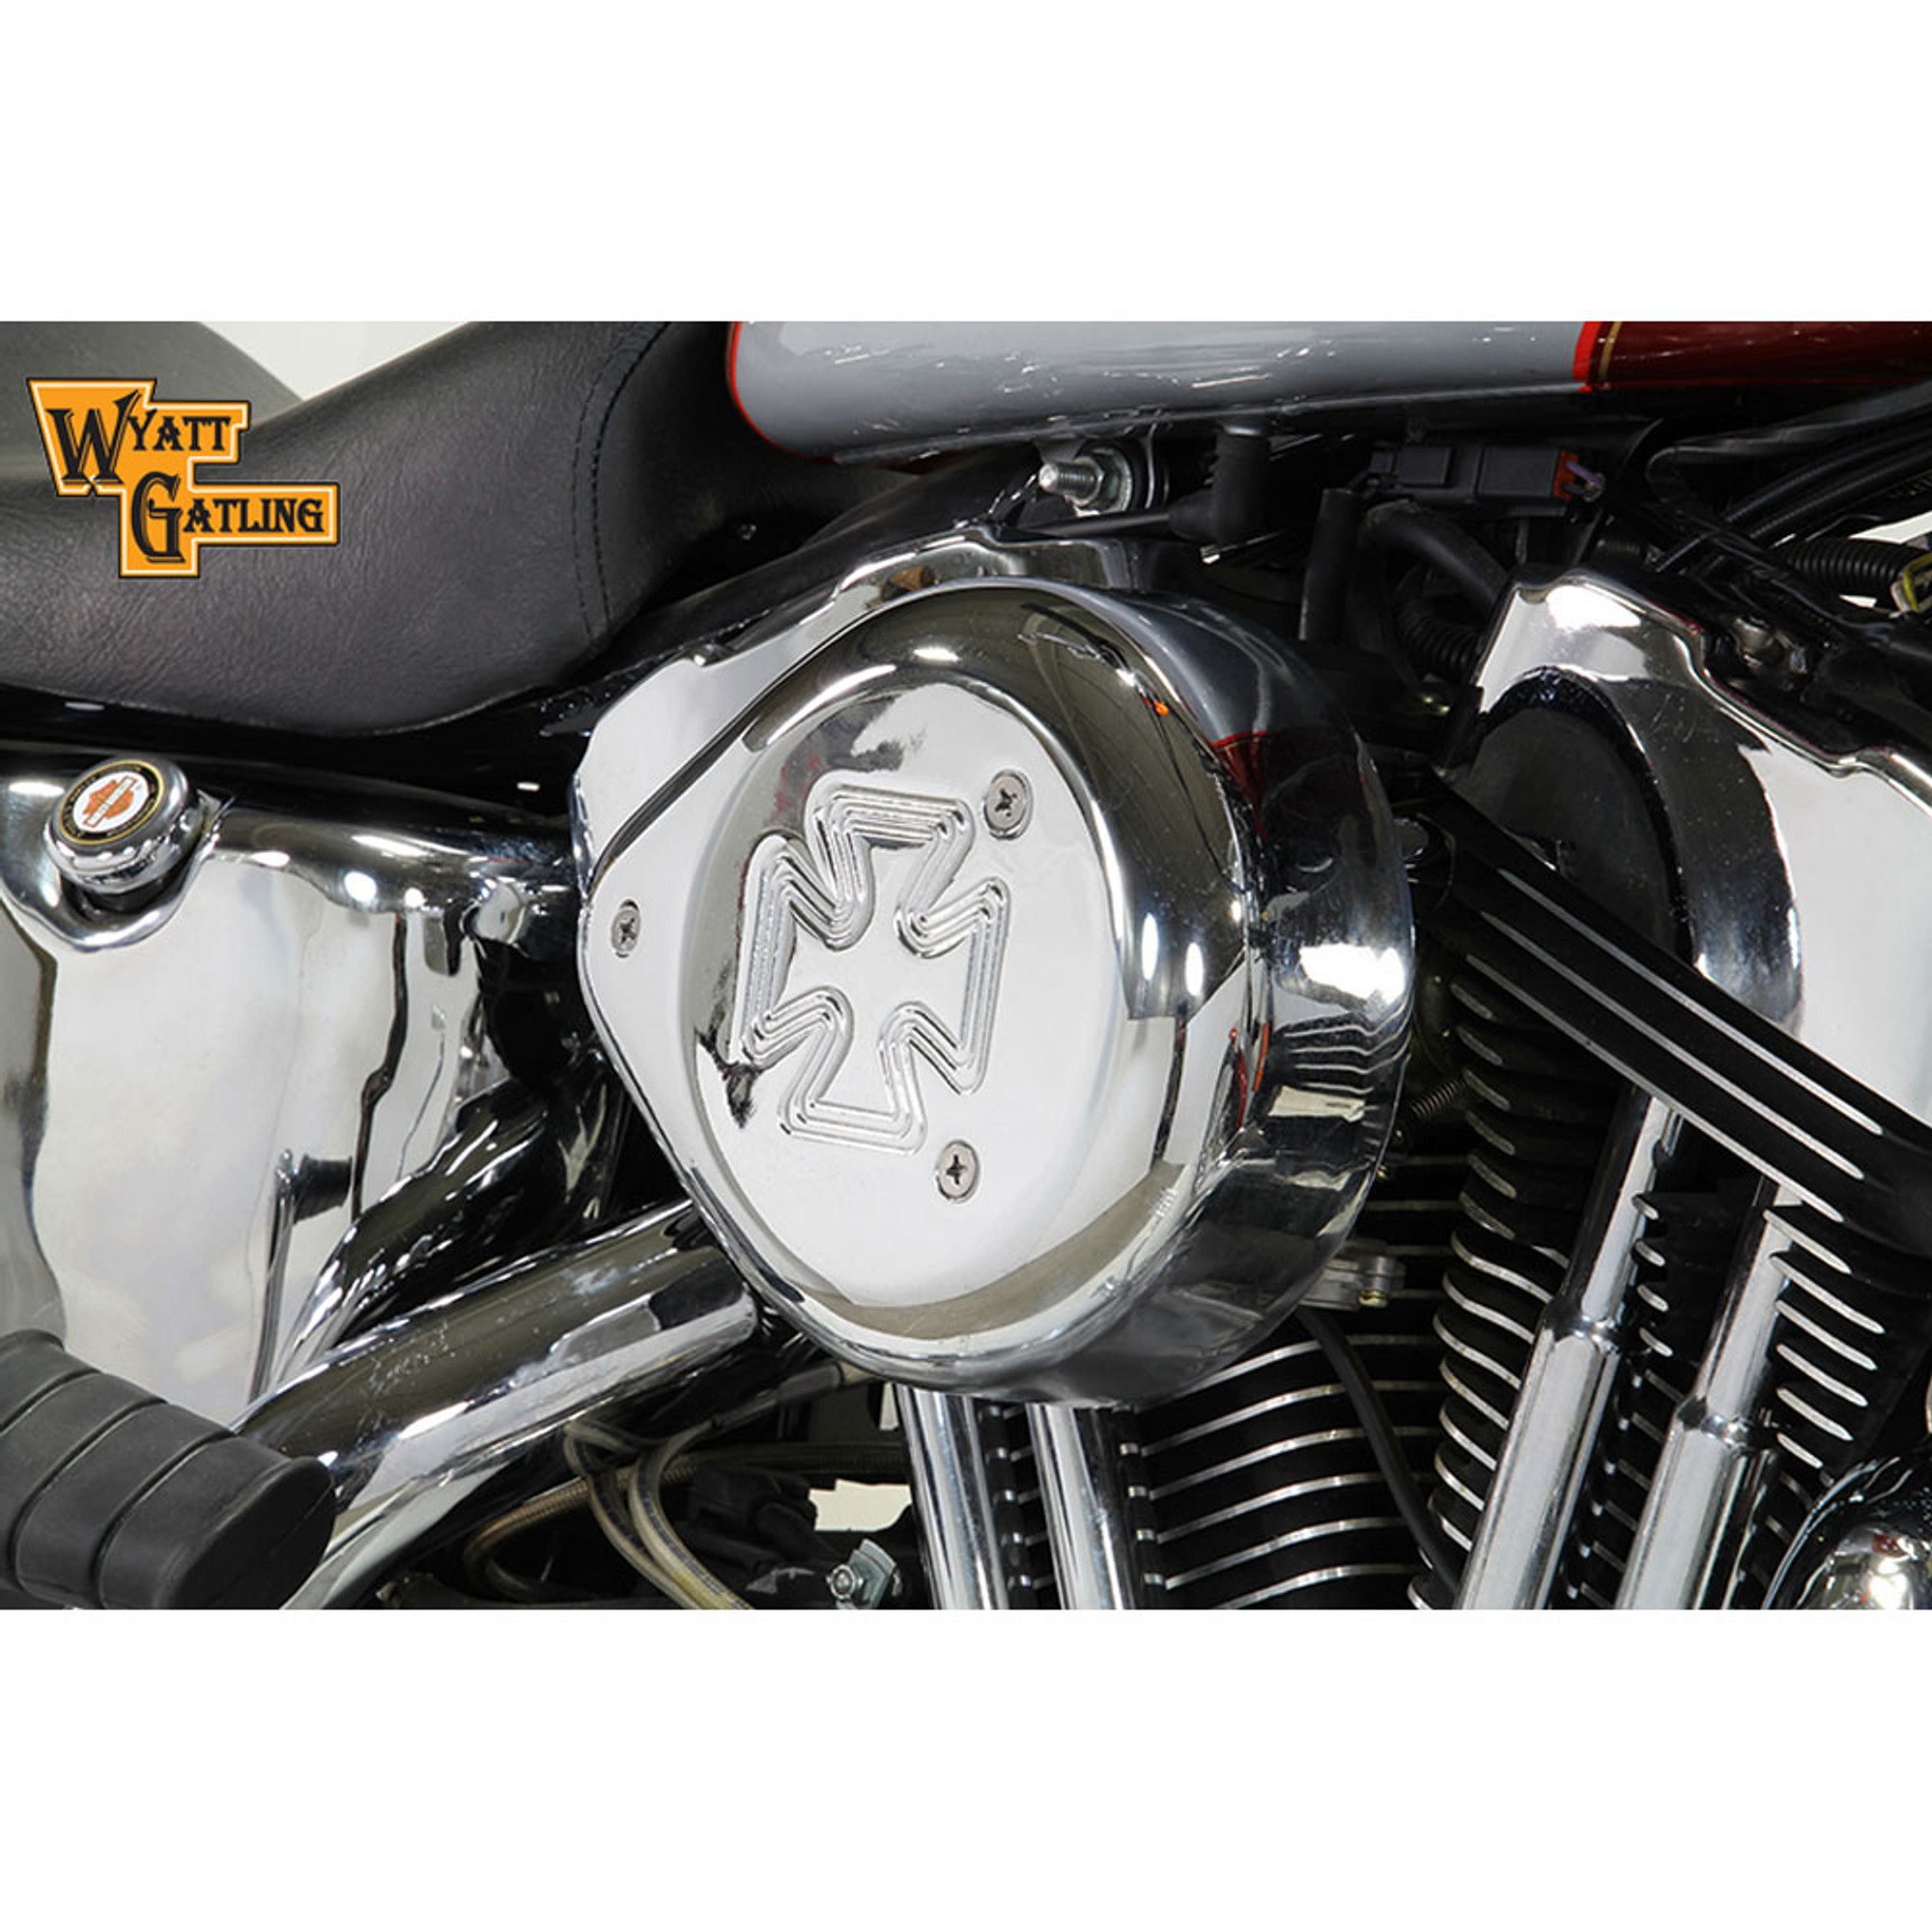 Maltese Cross Air Cleaner : V twin chrome maltese cross teardrop air cleaner for